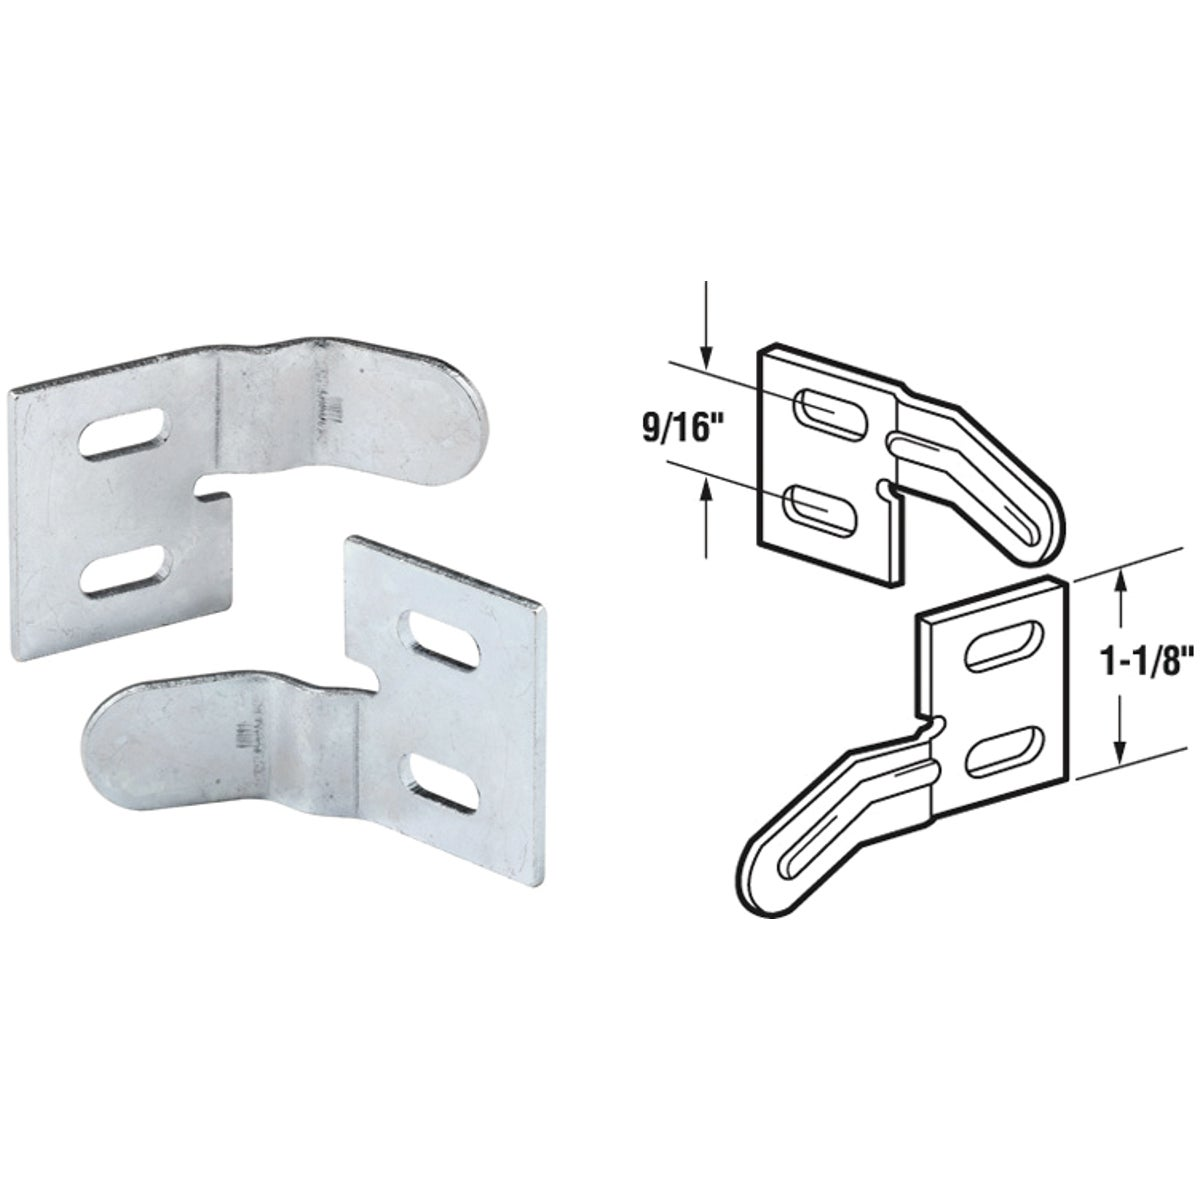 STEEL BI-FOLD ALIGNER - 161083 by Prime Line Products